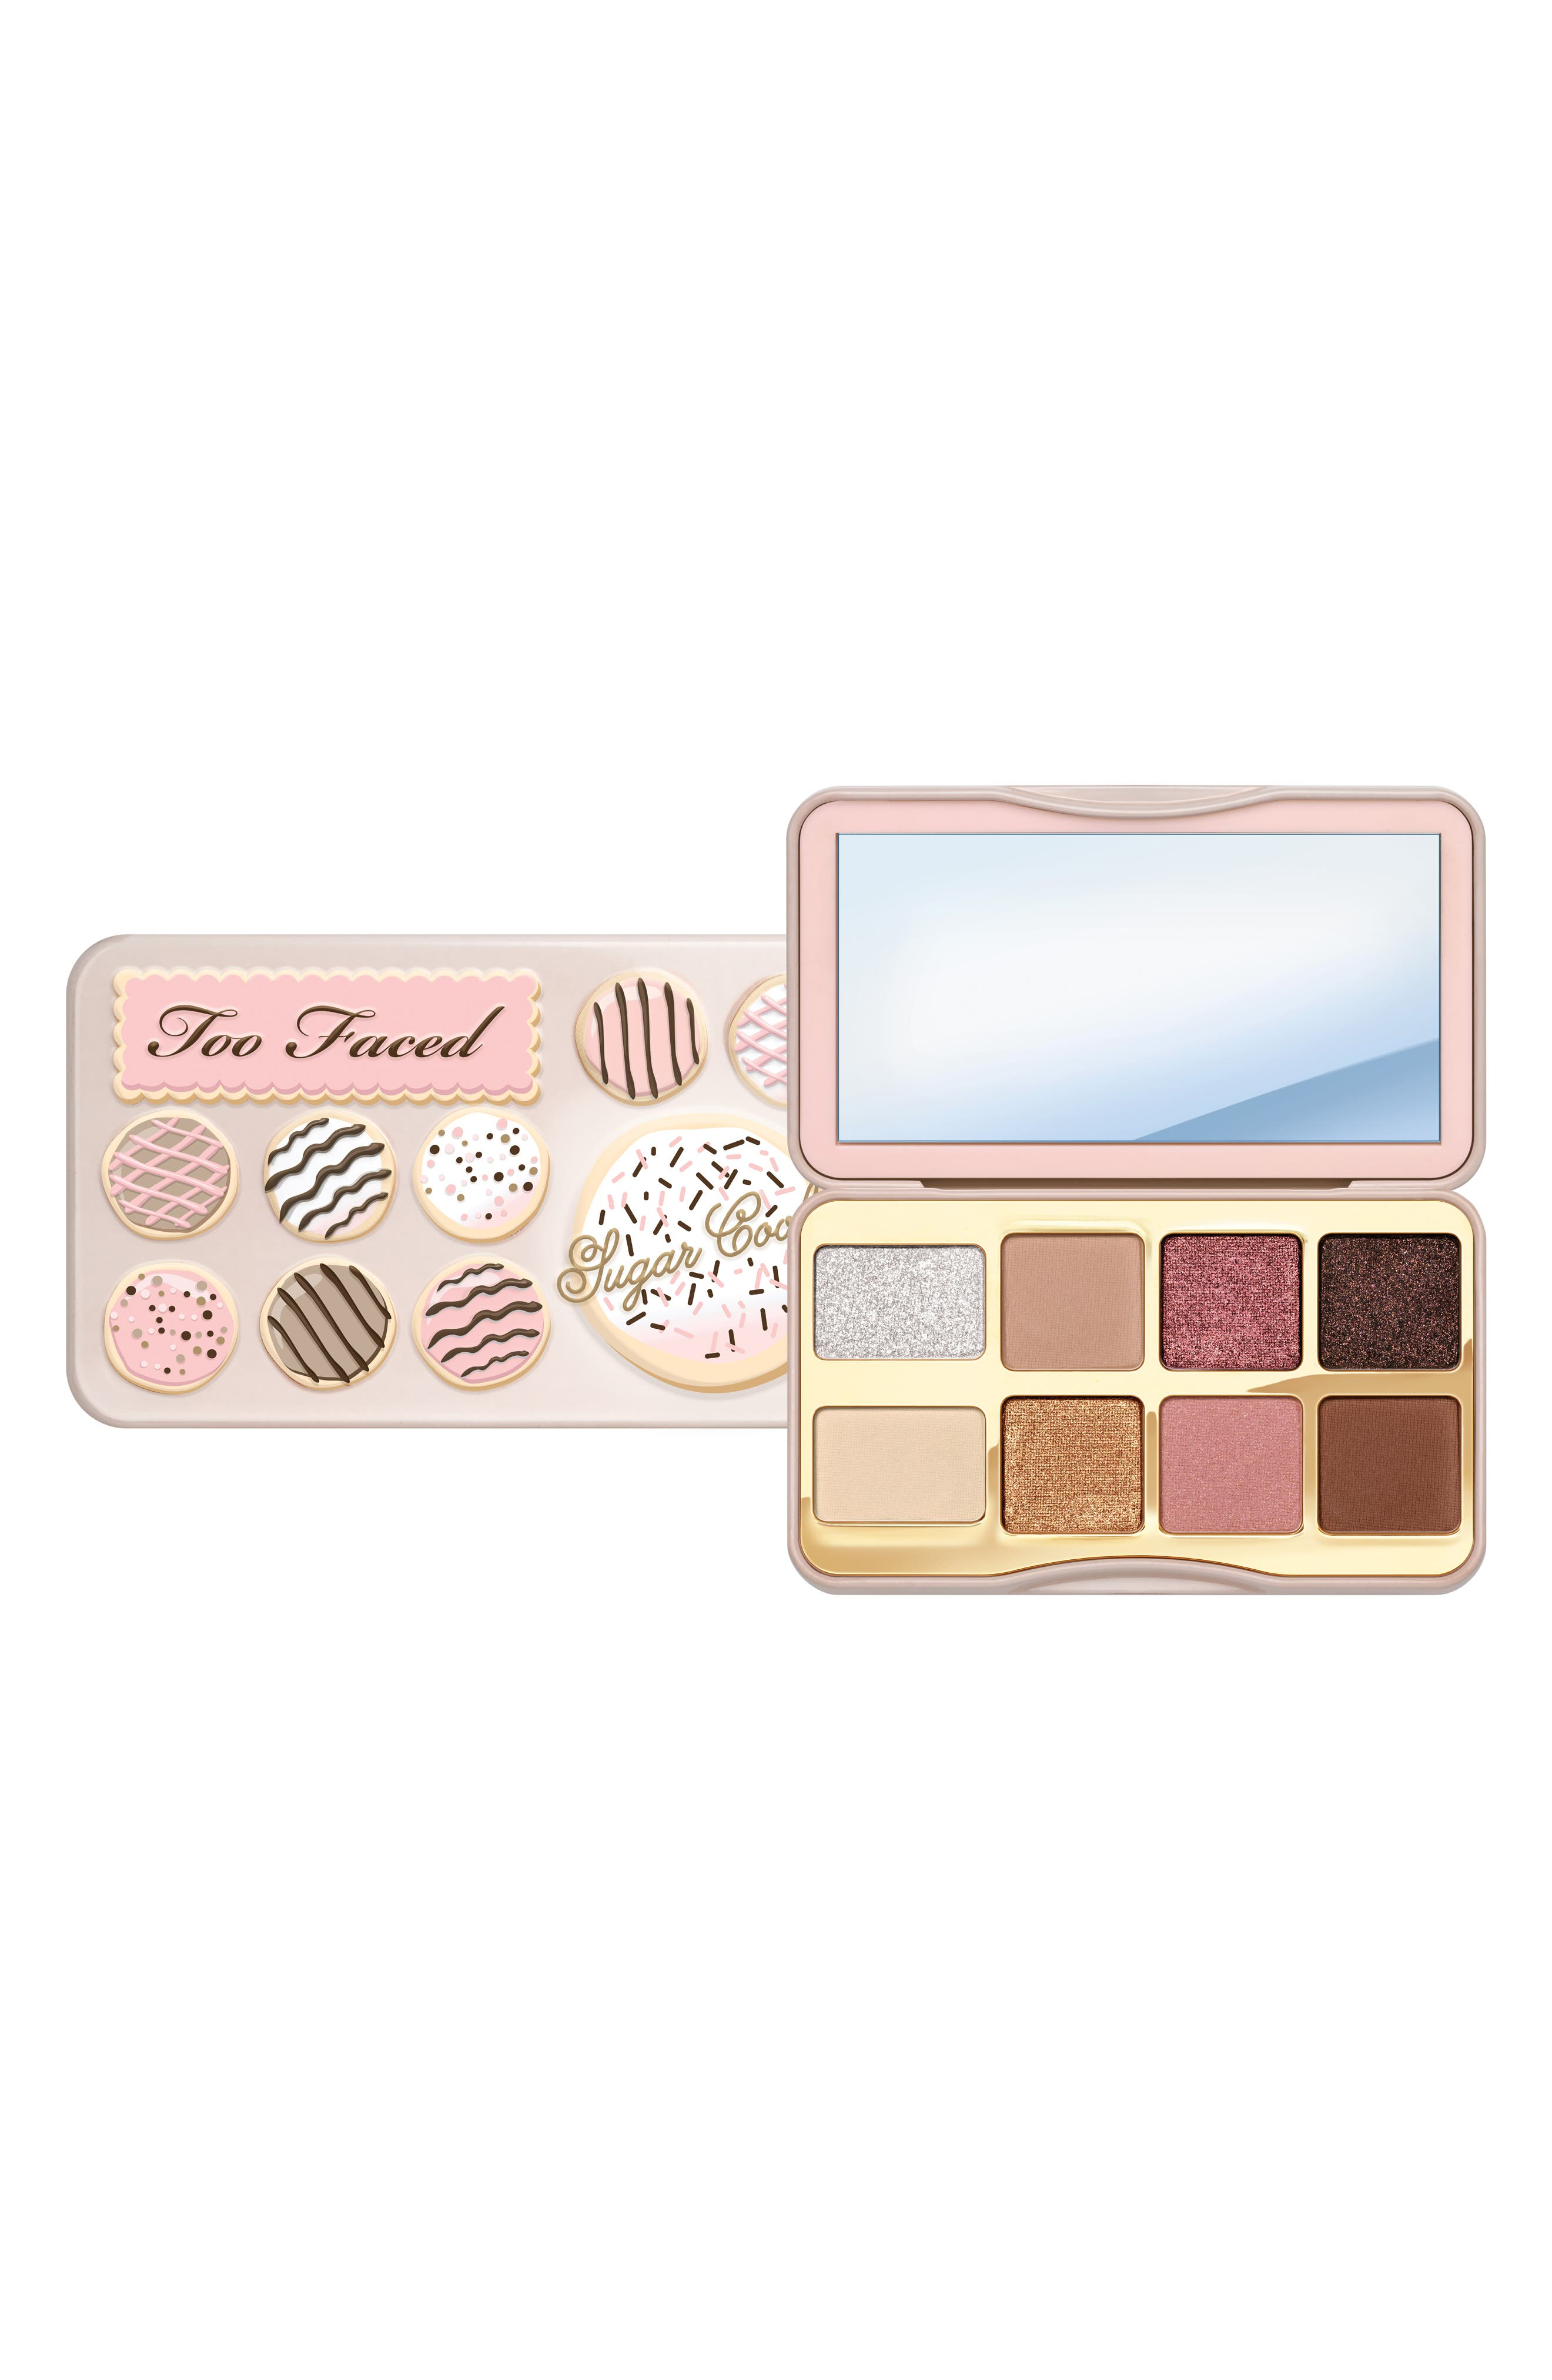 Sugar Cookie Eyeshadow Palette,                             Main thumbnail 1, color,                             NO COLOR